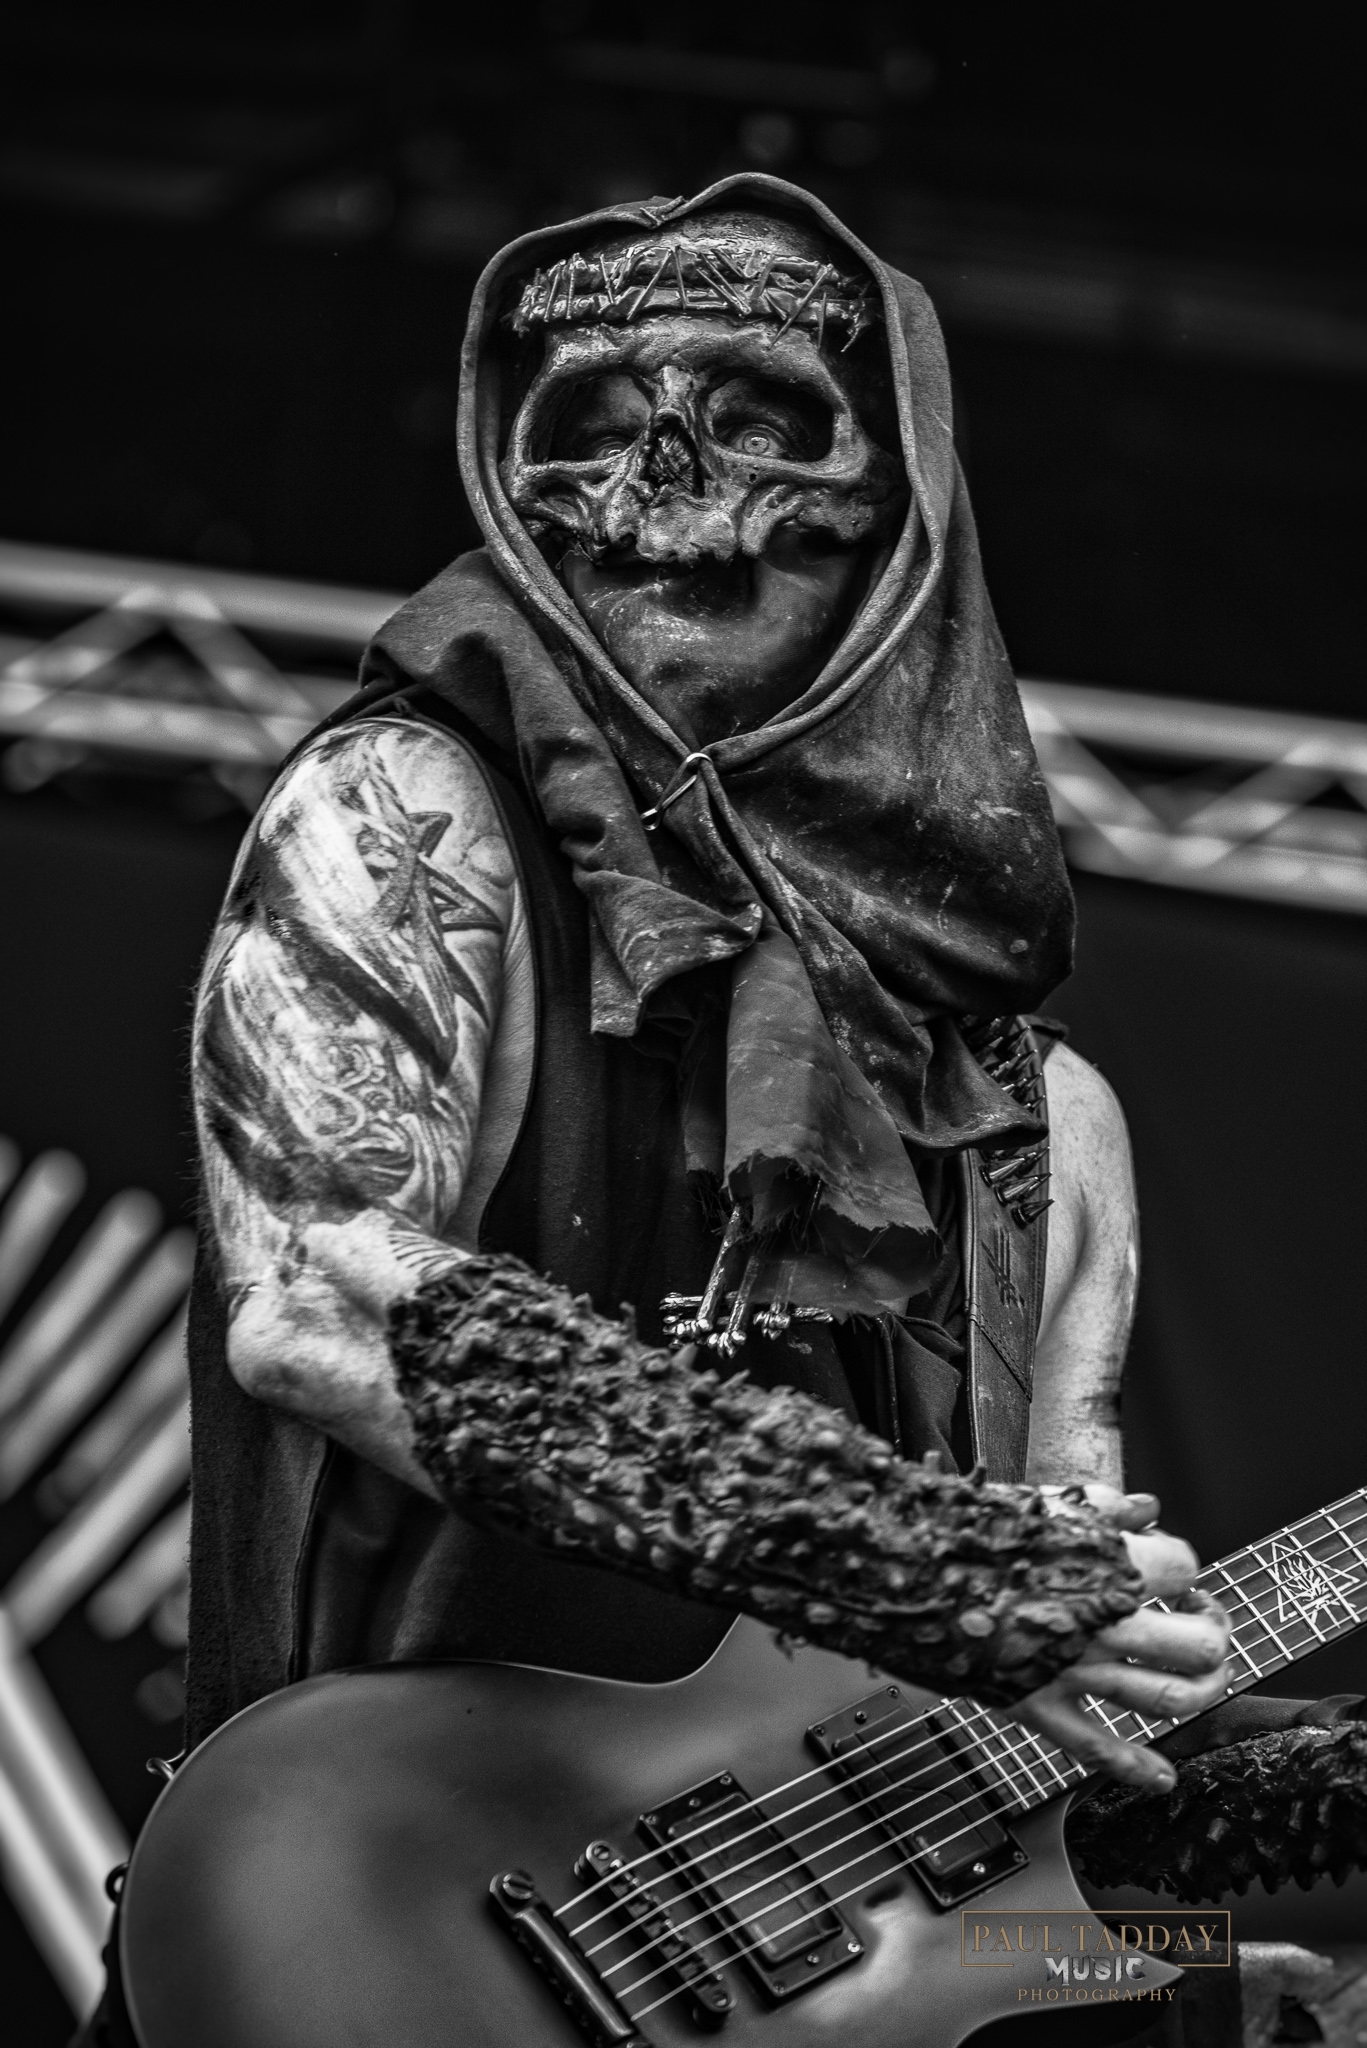 behemoth - download melbourne - march 2019 - web - paul tadday photography - 4.jpg